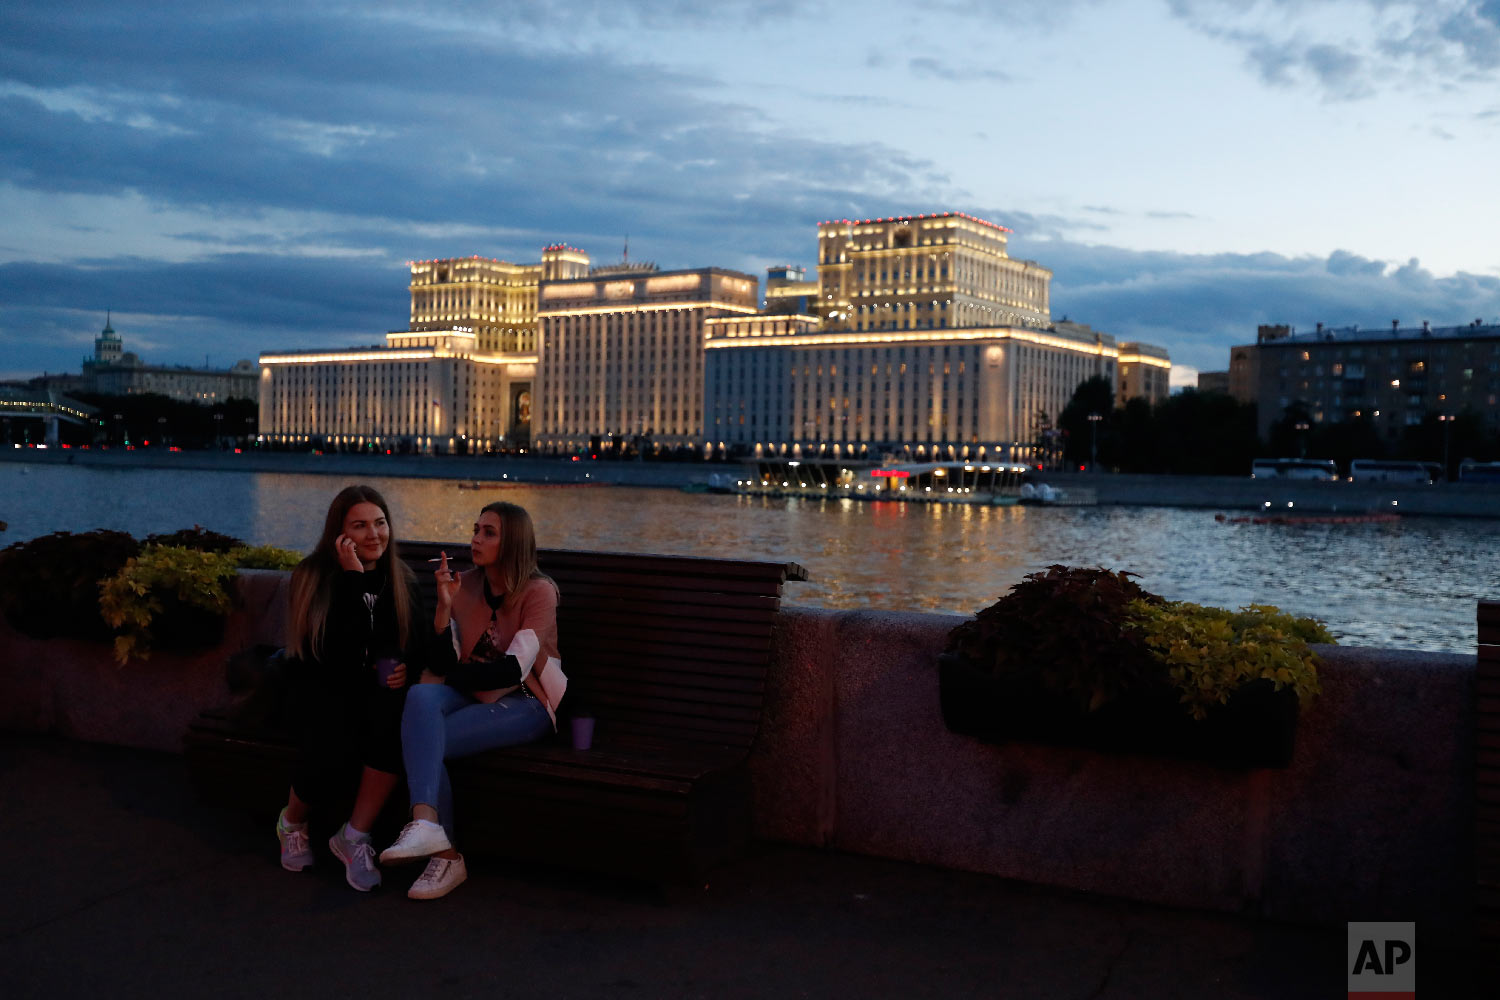 Women relax along the Moskva riverfront in Gorky Park as night falls, during the 2018 soccer World Cup in Moscow, Russia on Thursday, July 5, 2018. (AP Photo/Rebecca Blackwell)